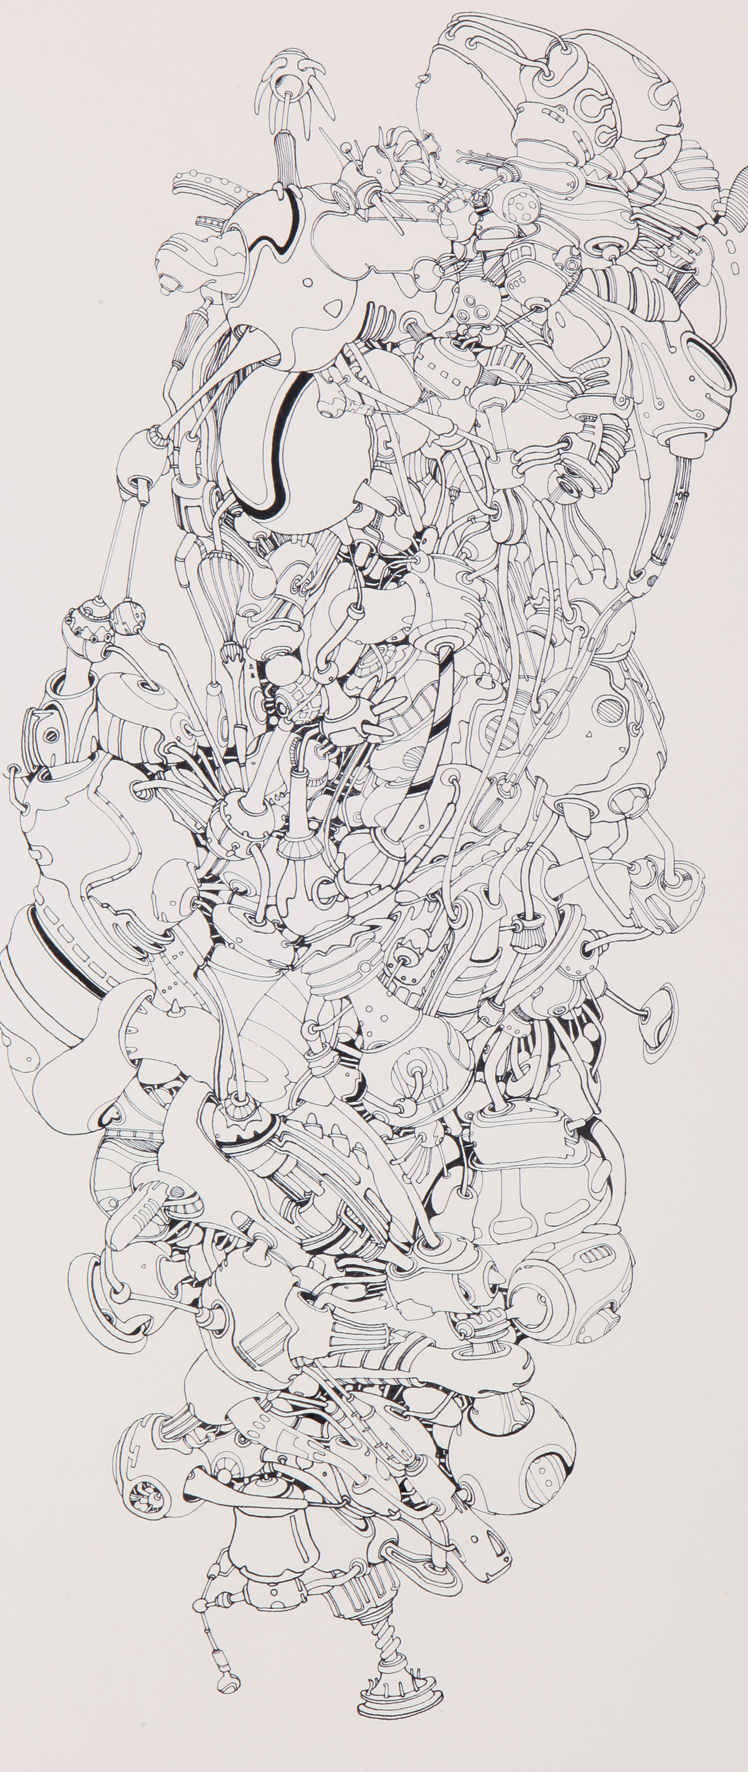 Strange planet 7 ink on paper 60x100cm 2010.jpg